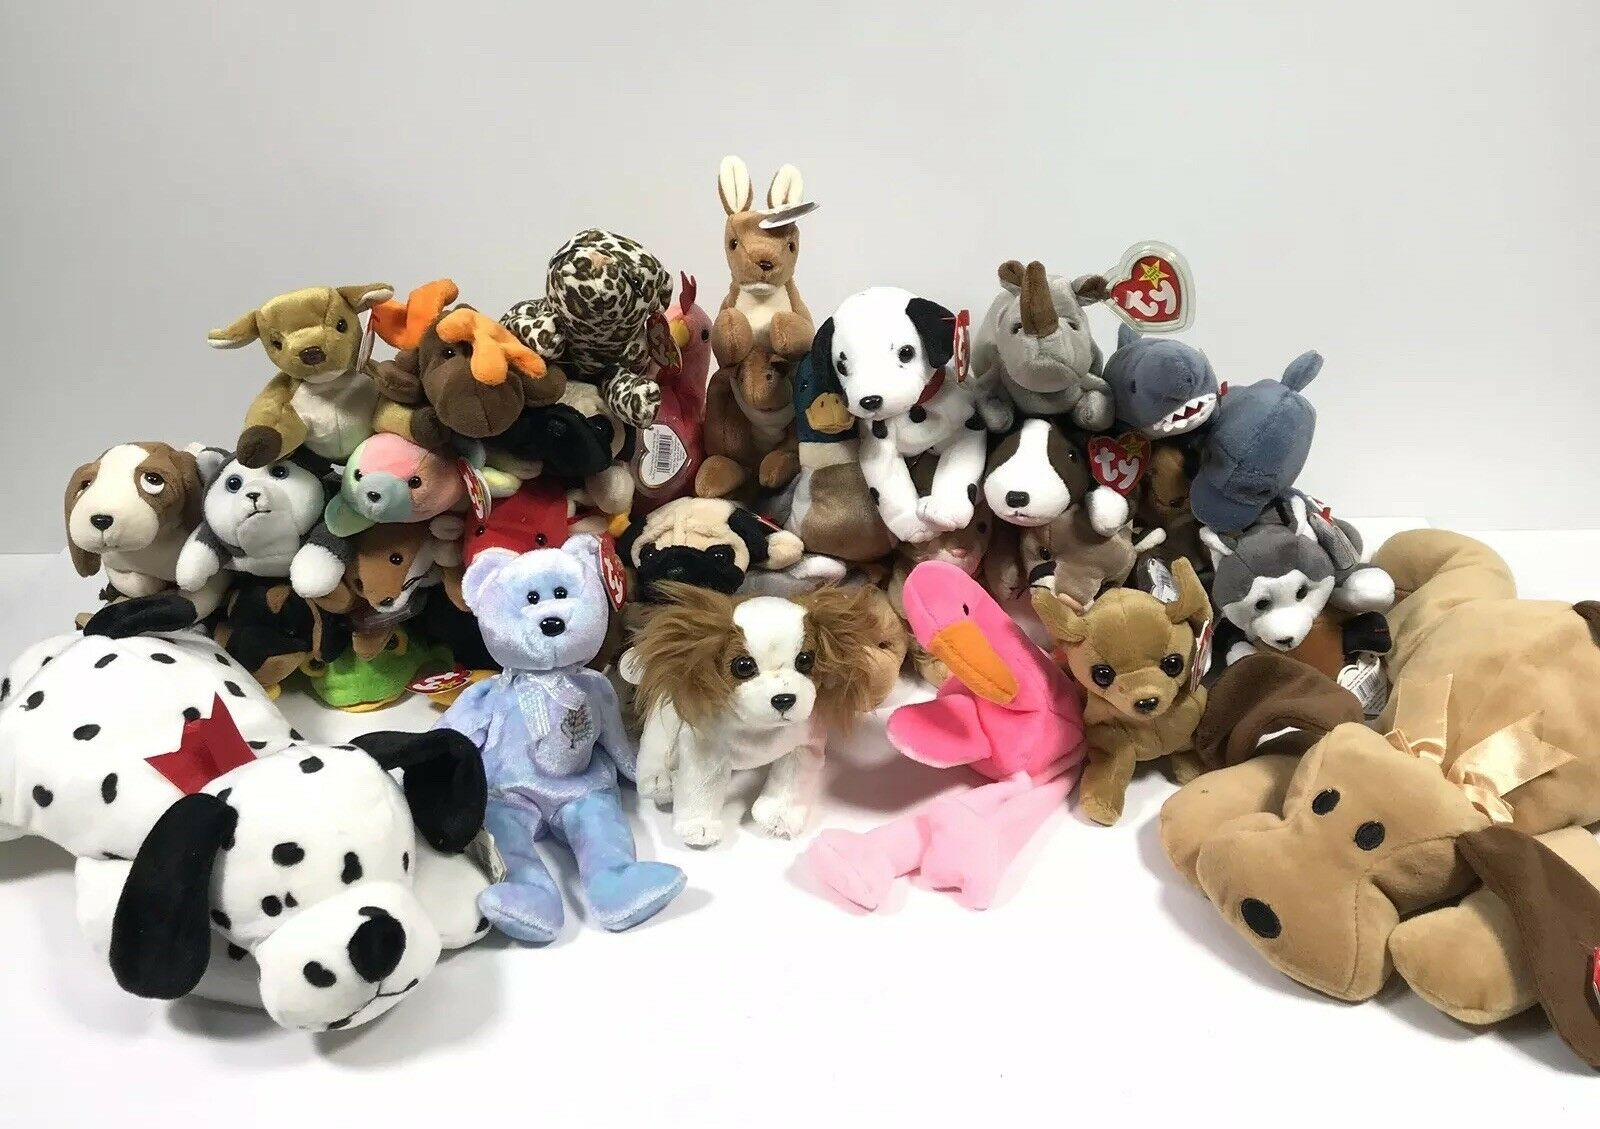 Lot of 39 TY Original BEANIE BABIES With With With Tags deef67